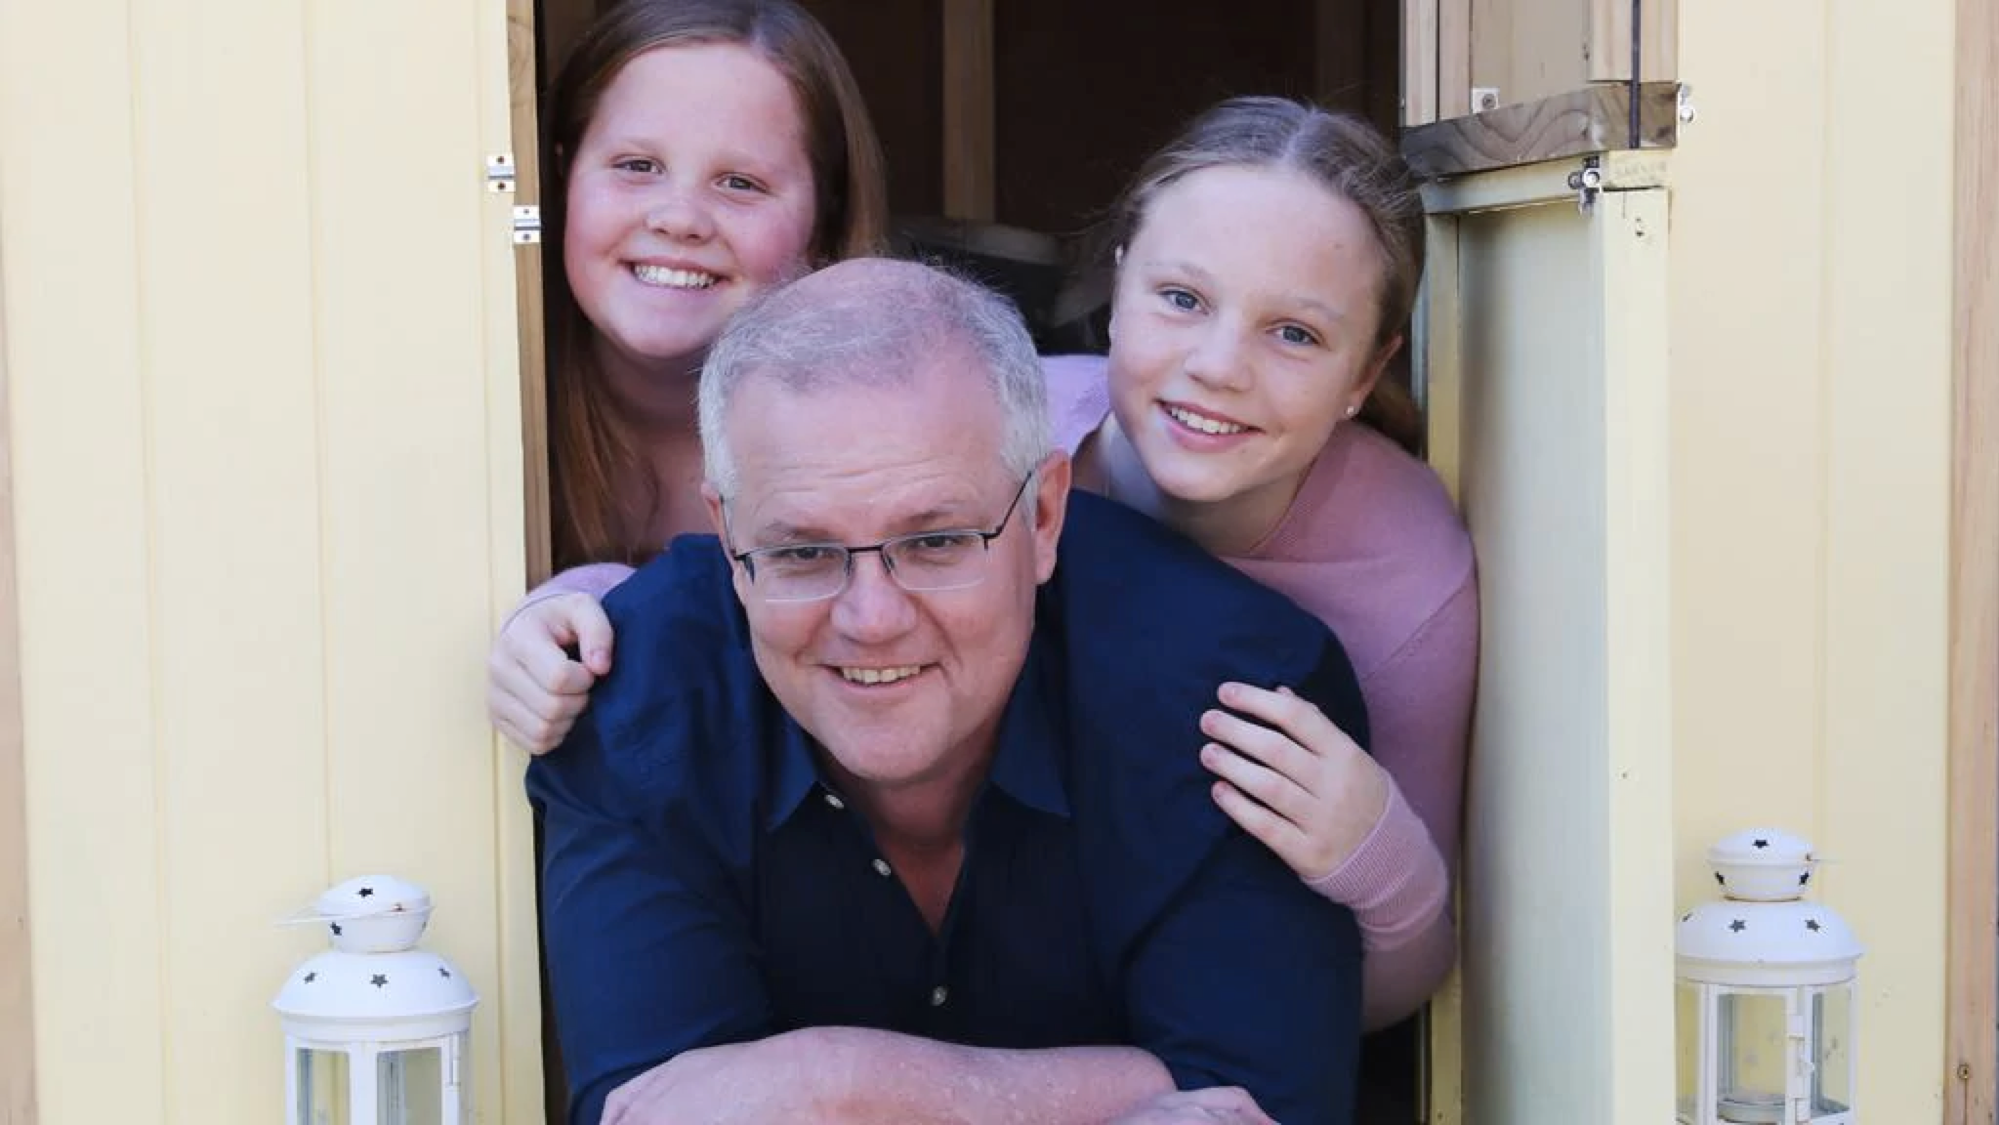 Morrison's Daughter To Build And Negatively Gear Second Cubby House After Government's Relaxation Of Lending Regulations